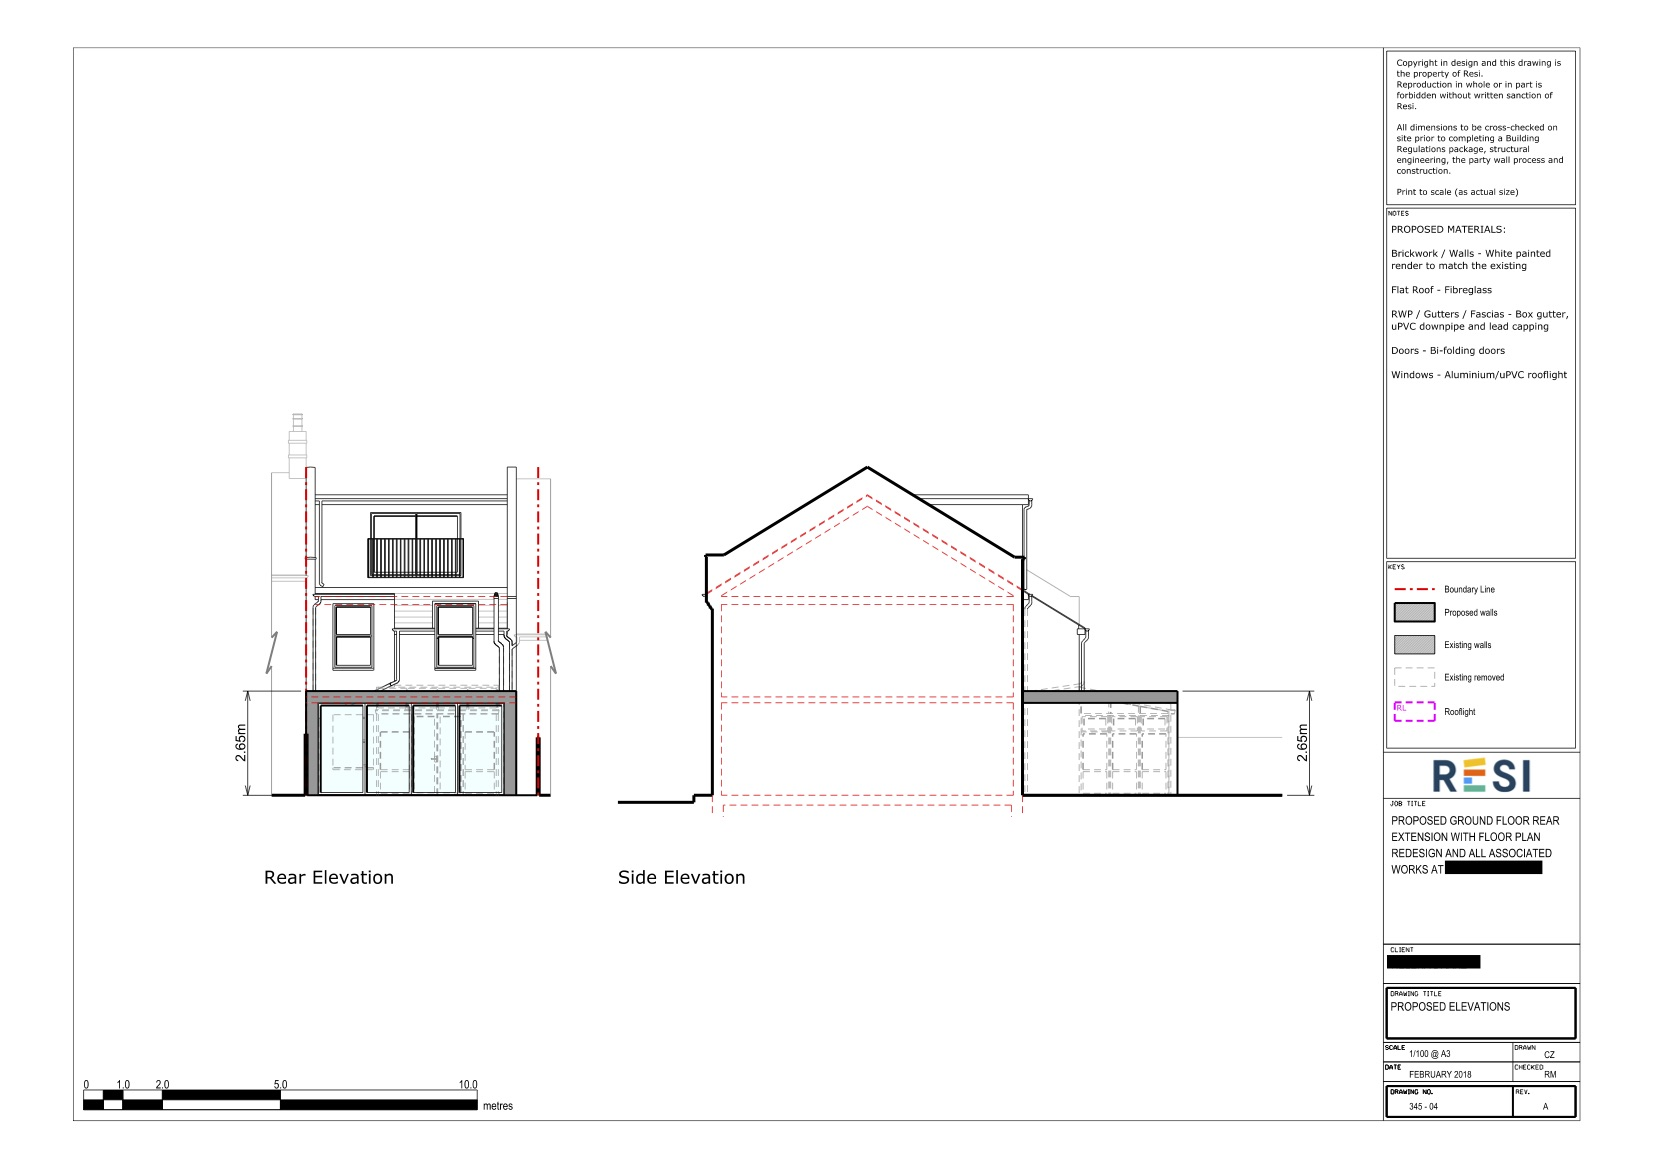 Architectural drawings rev a 8   elevations